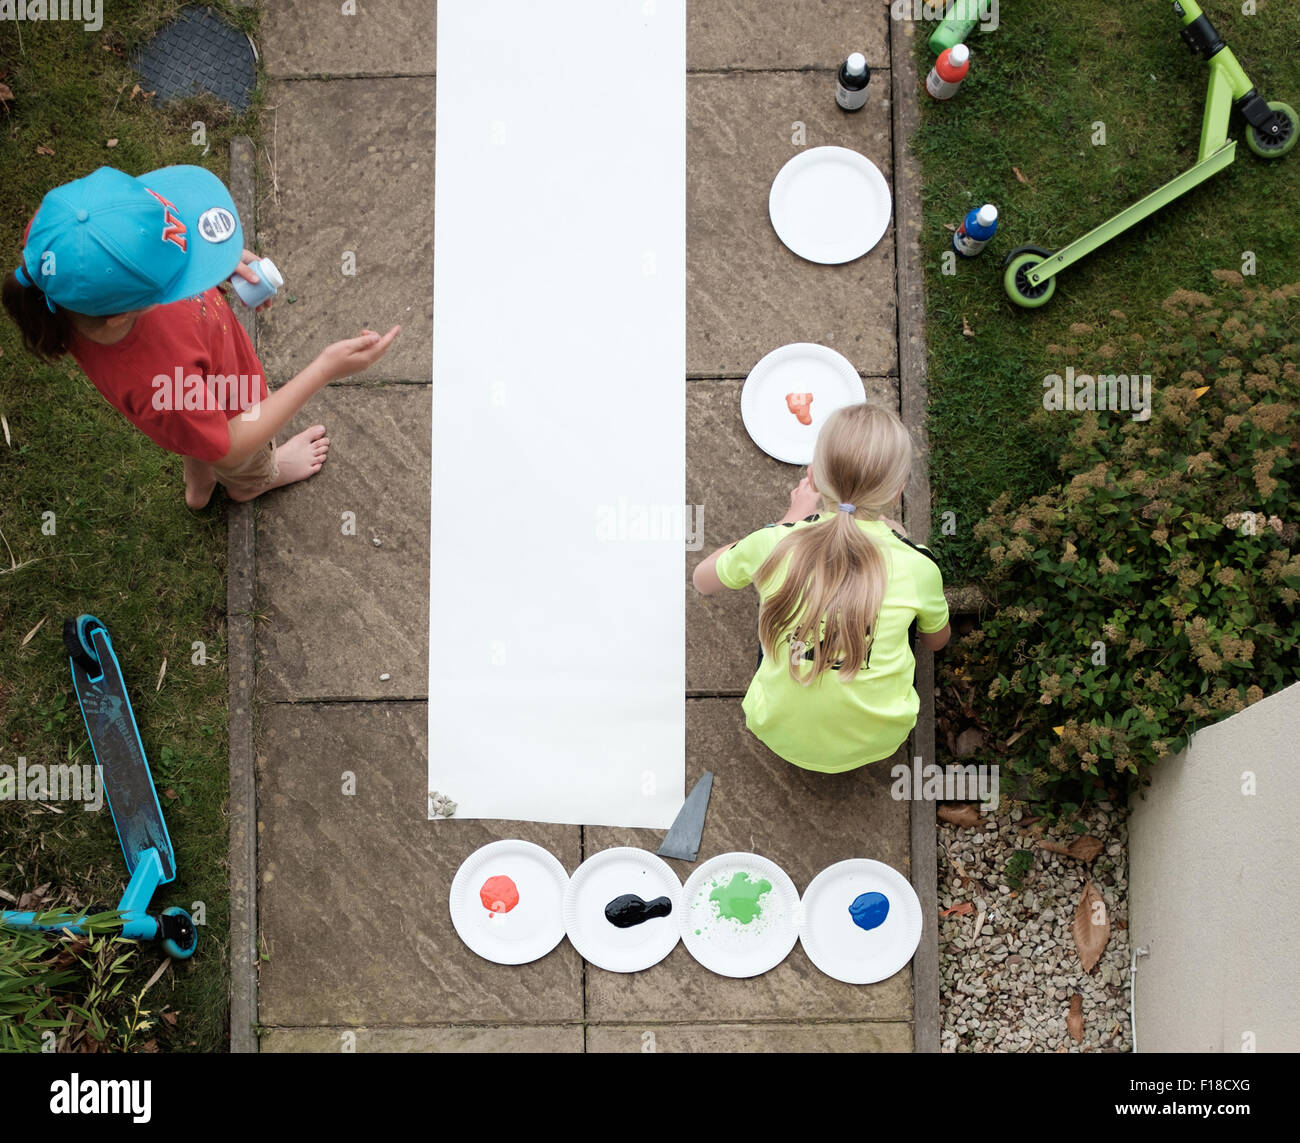 Aerial shot of young girls painting outdoors using scooters with paint on the wheels - Stock Image